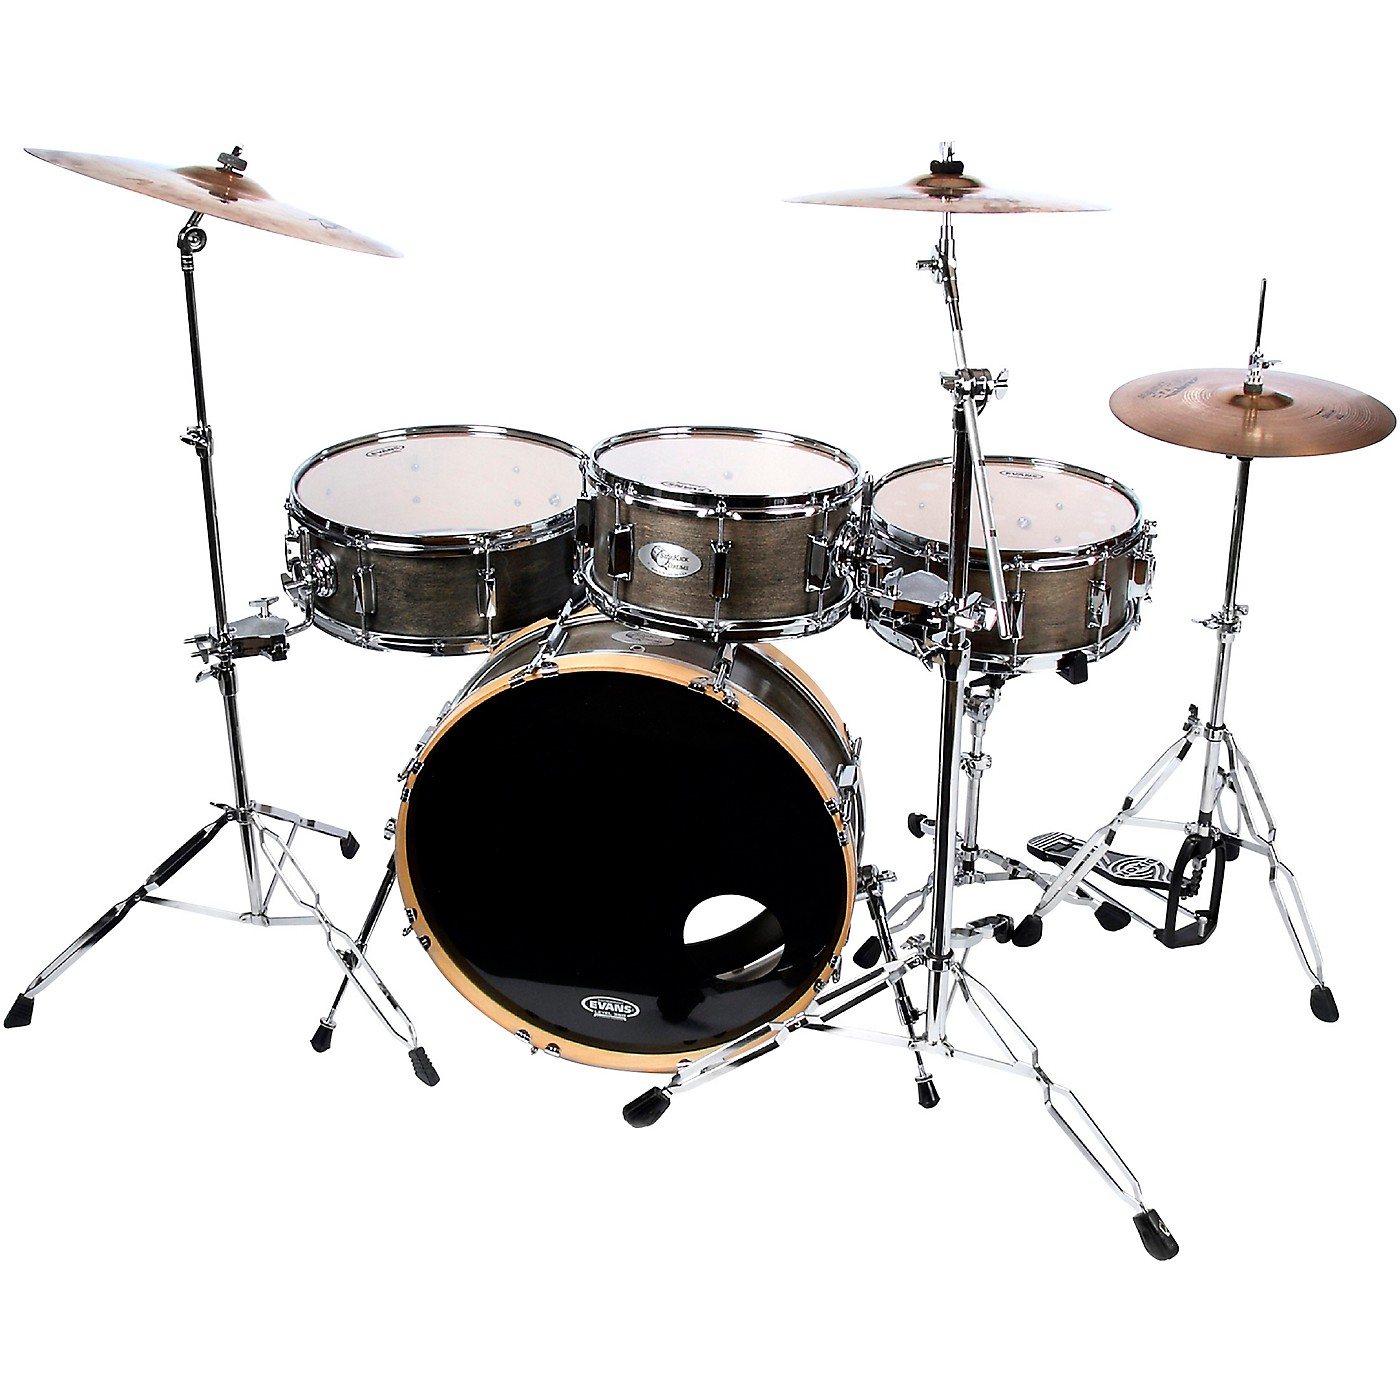 SideKick Drums Skinny Drum Set 4-Piece Shell Pack thumbnail